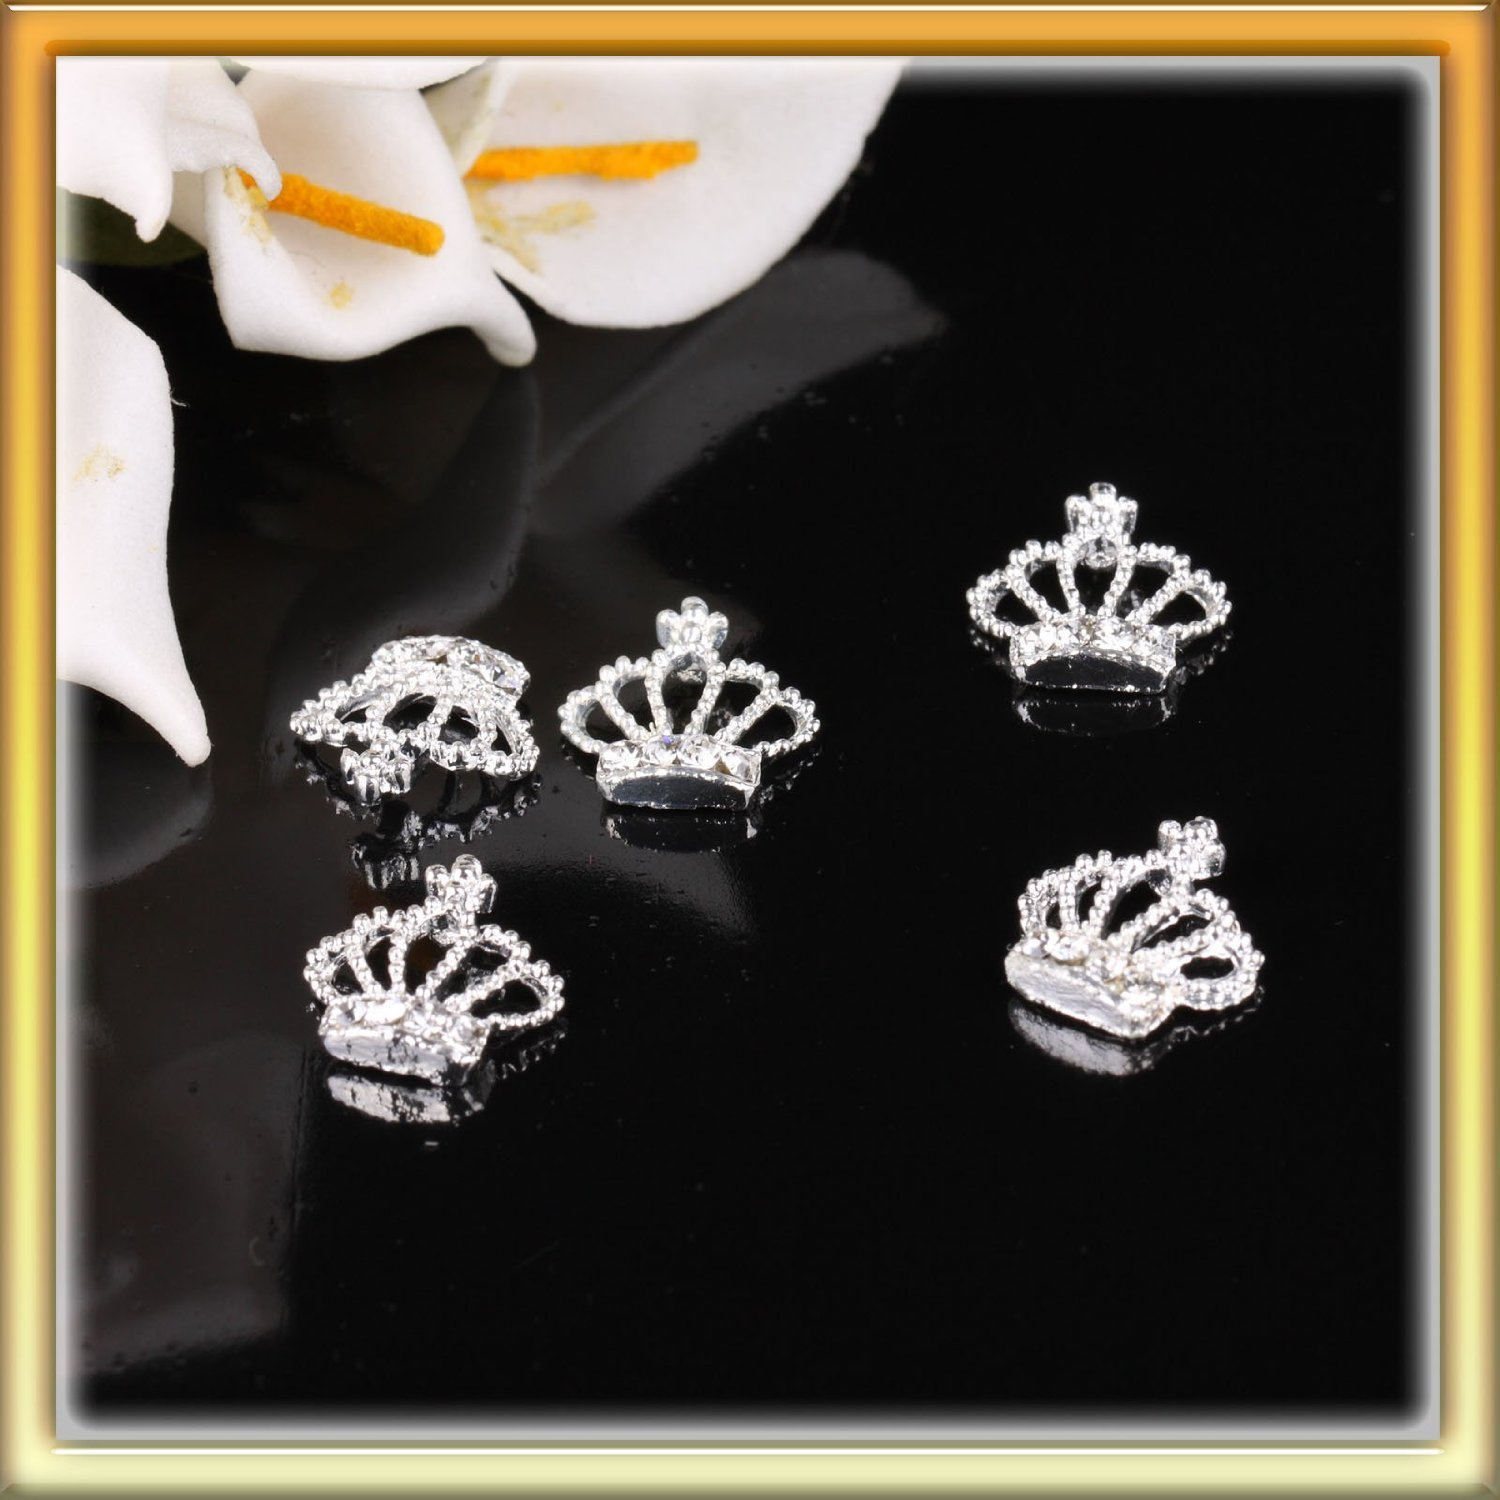 4495be1644 Lybeauty Ly 5Pcs Fashion Nail Art 3D Crown Shaped Rhinestone Metal ...